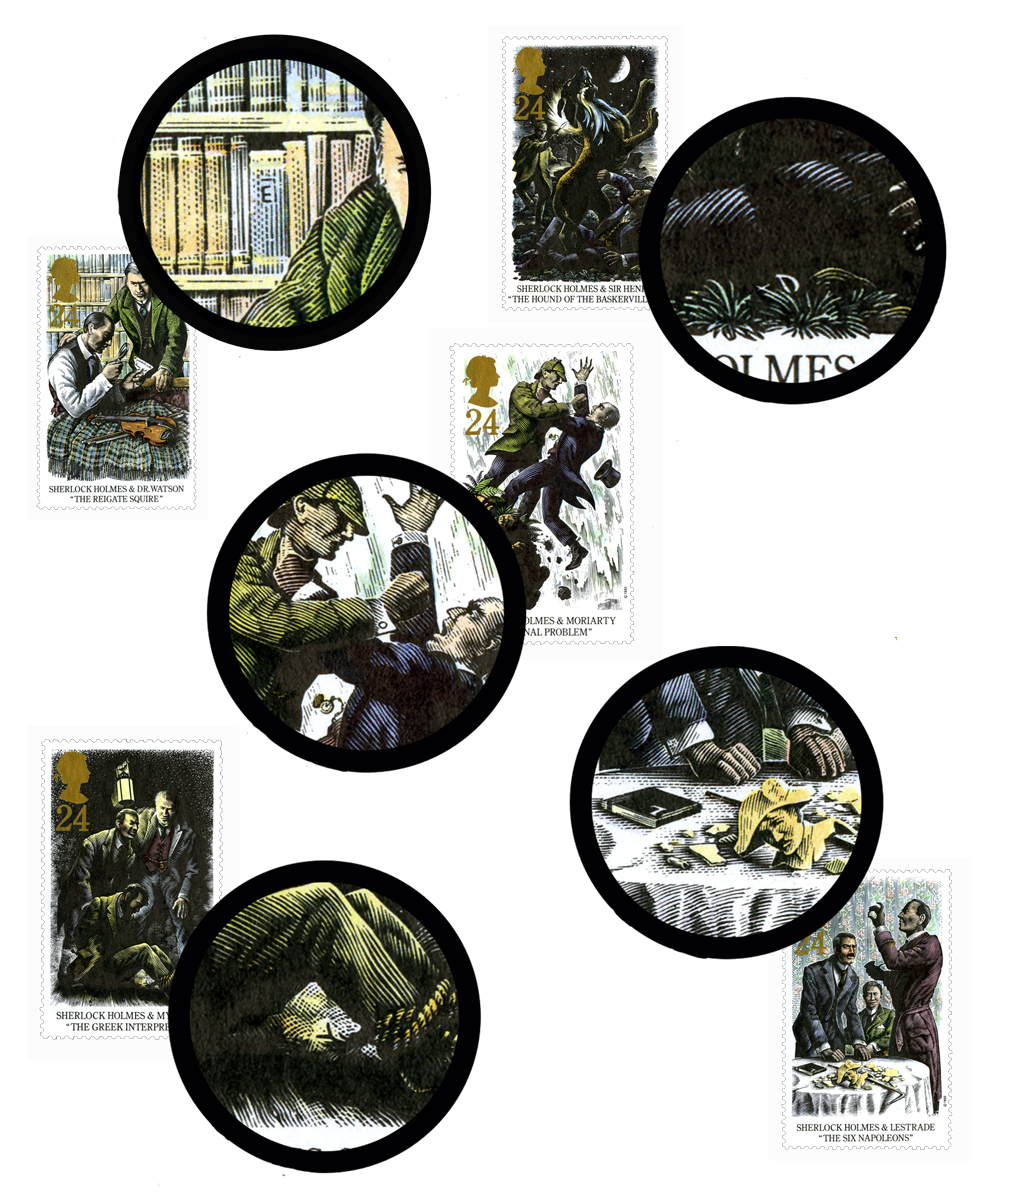 Images of the Sherlock stamps accompanied by blown up section showing where the hidden letters are.